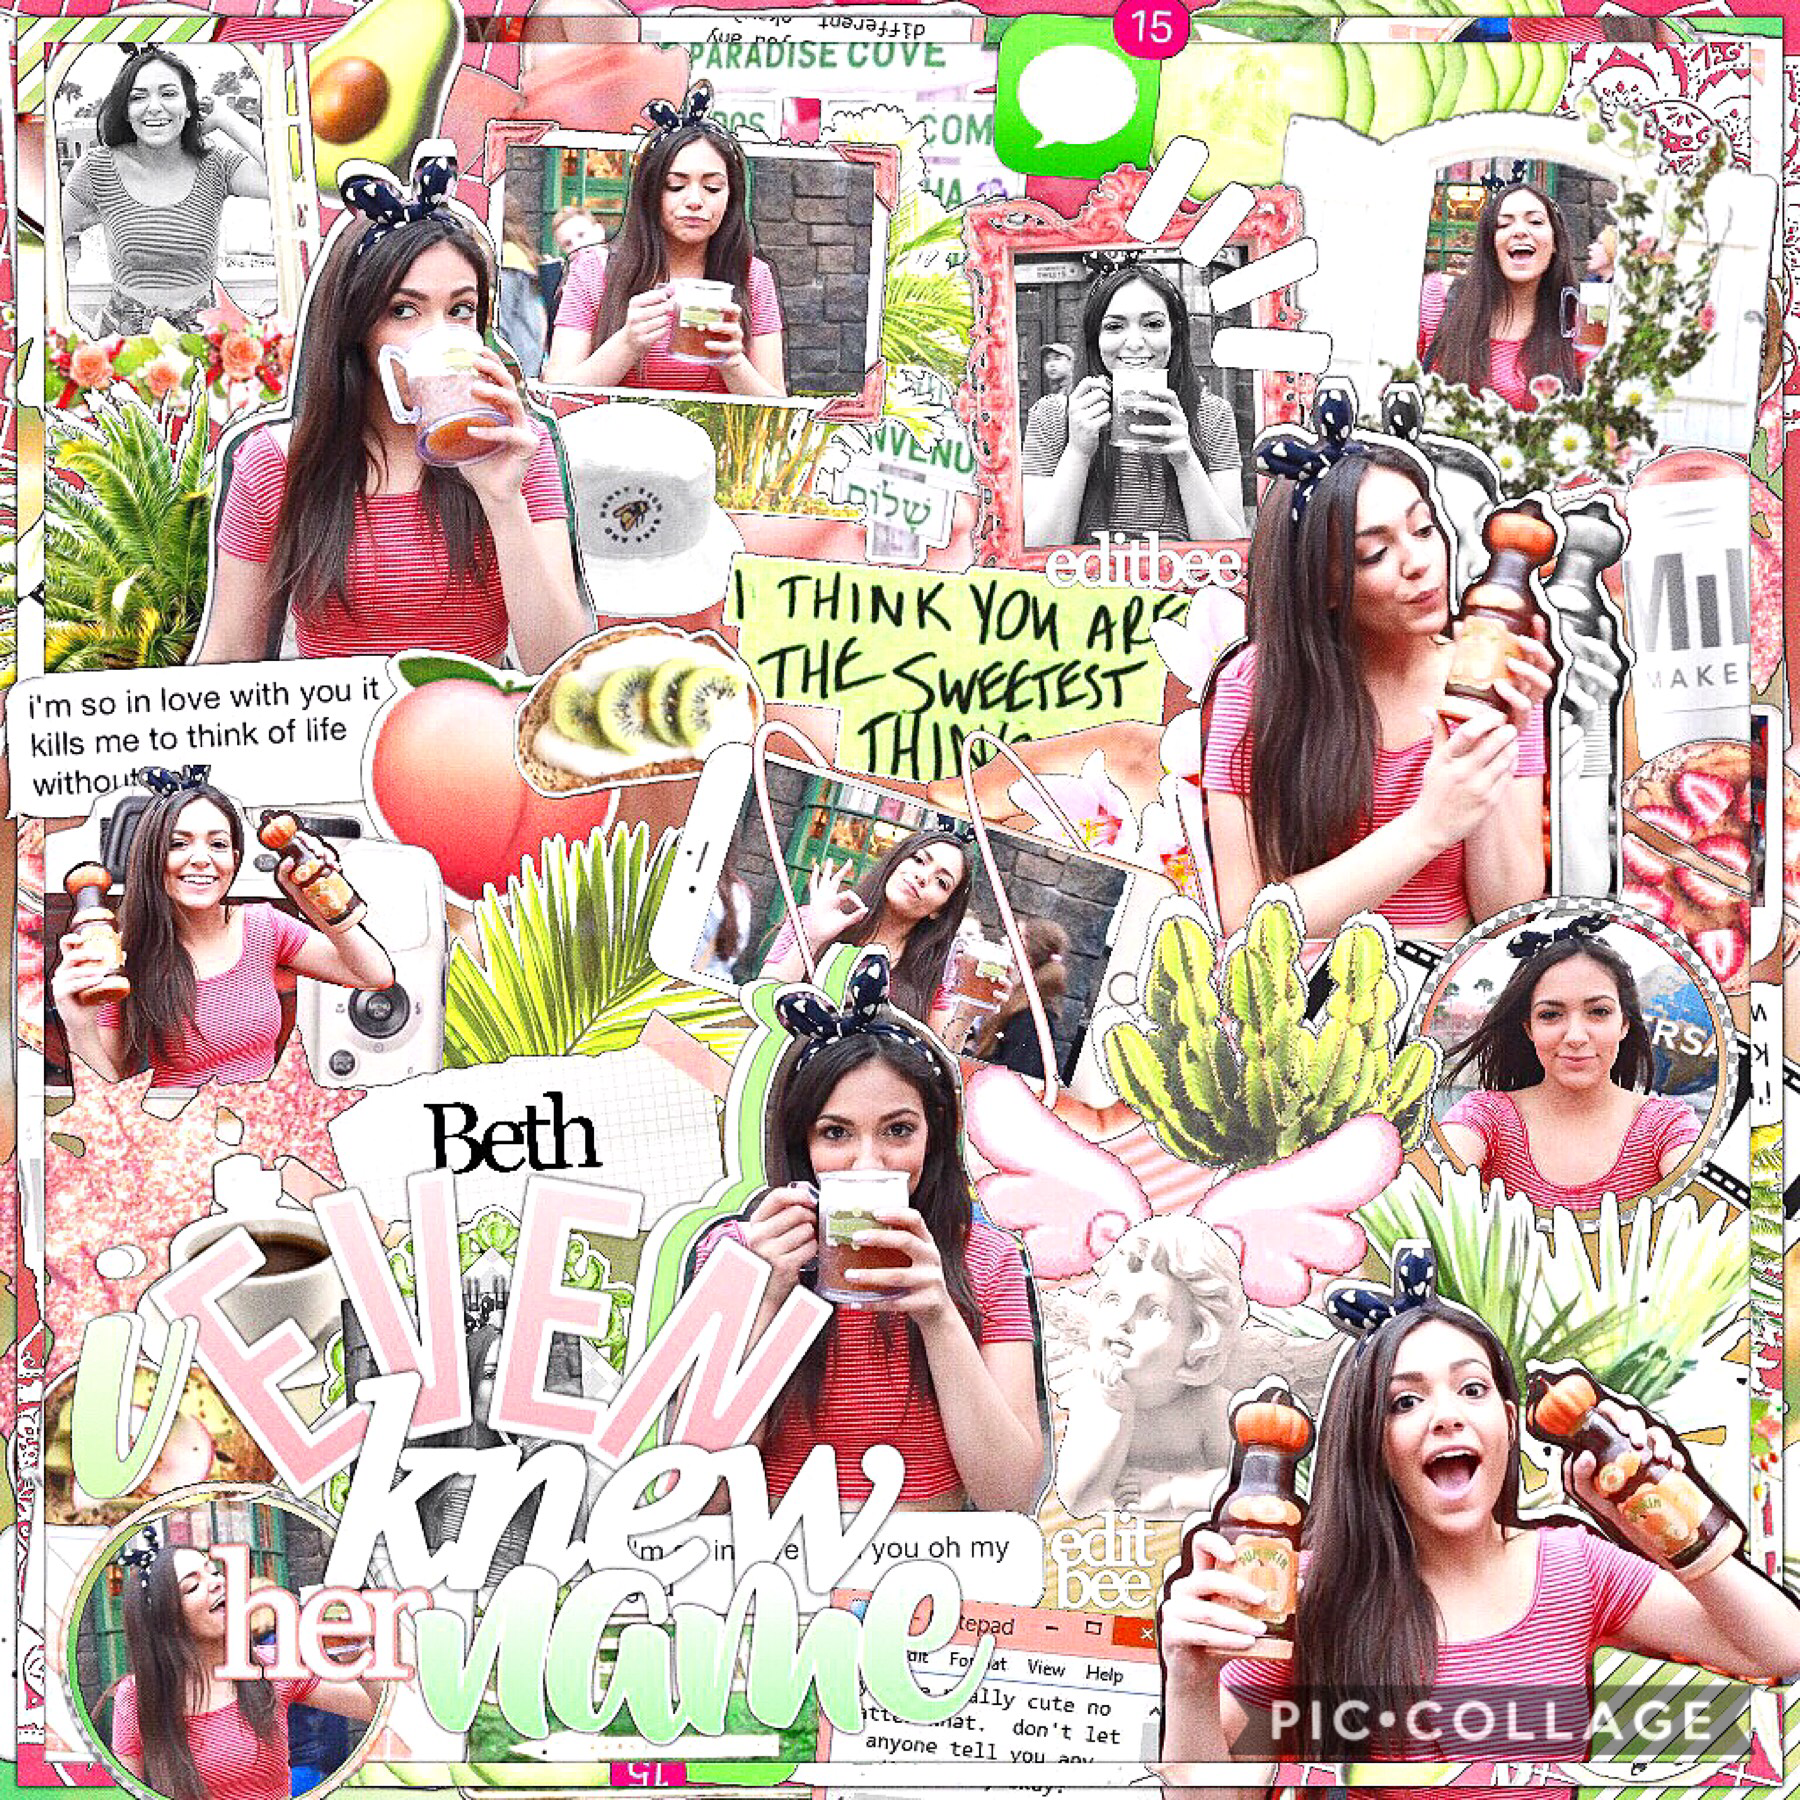 alohaa 🌺 I'm kind of lazy lately and I have school too, so I apologize for editing bad/not at all lol🌤 wanting fall lately haha GET PUMPED FOR THAT😍🍃 whi: @editbee